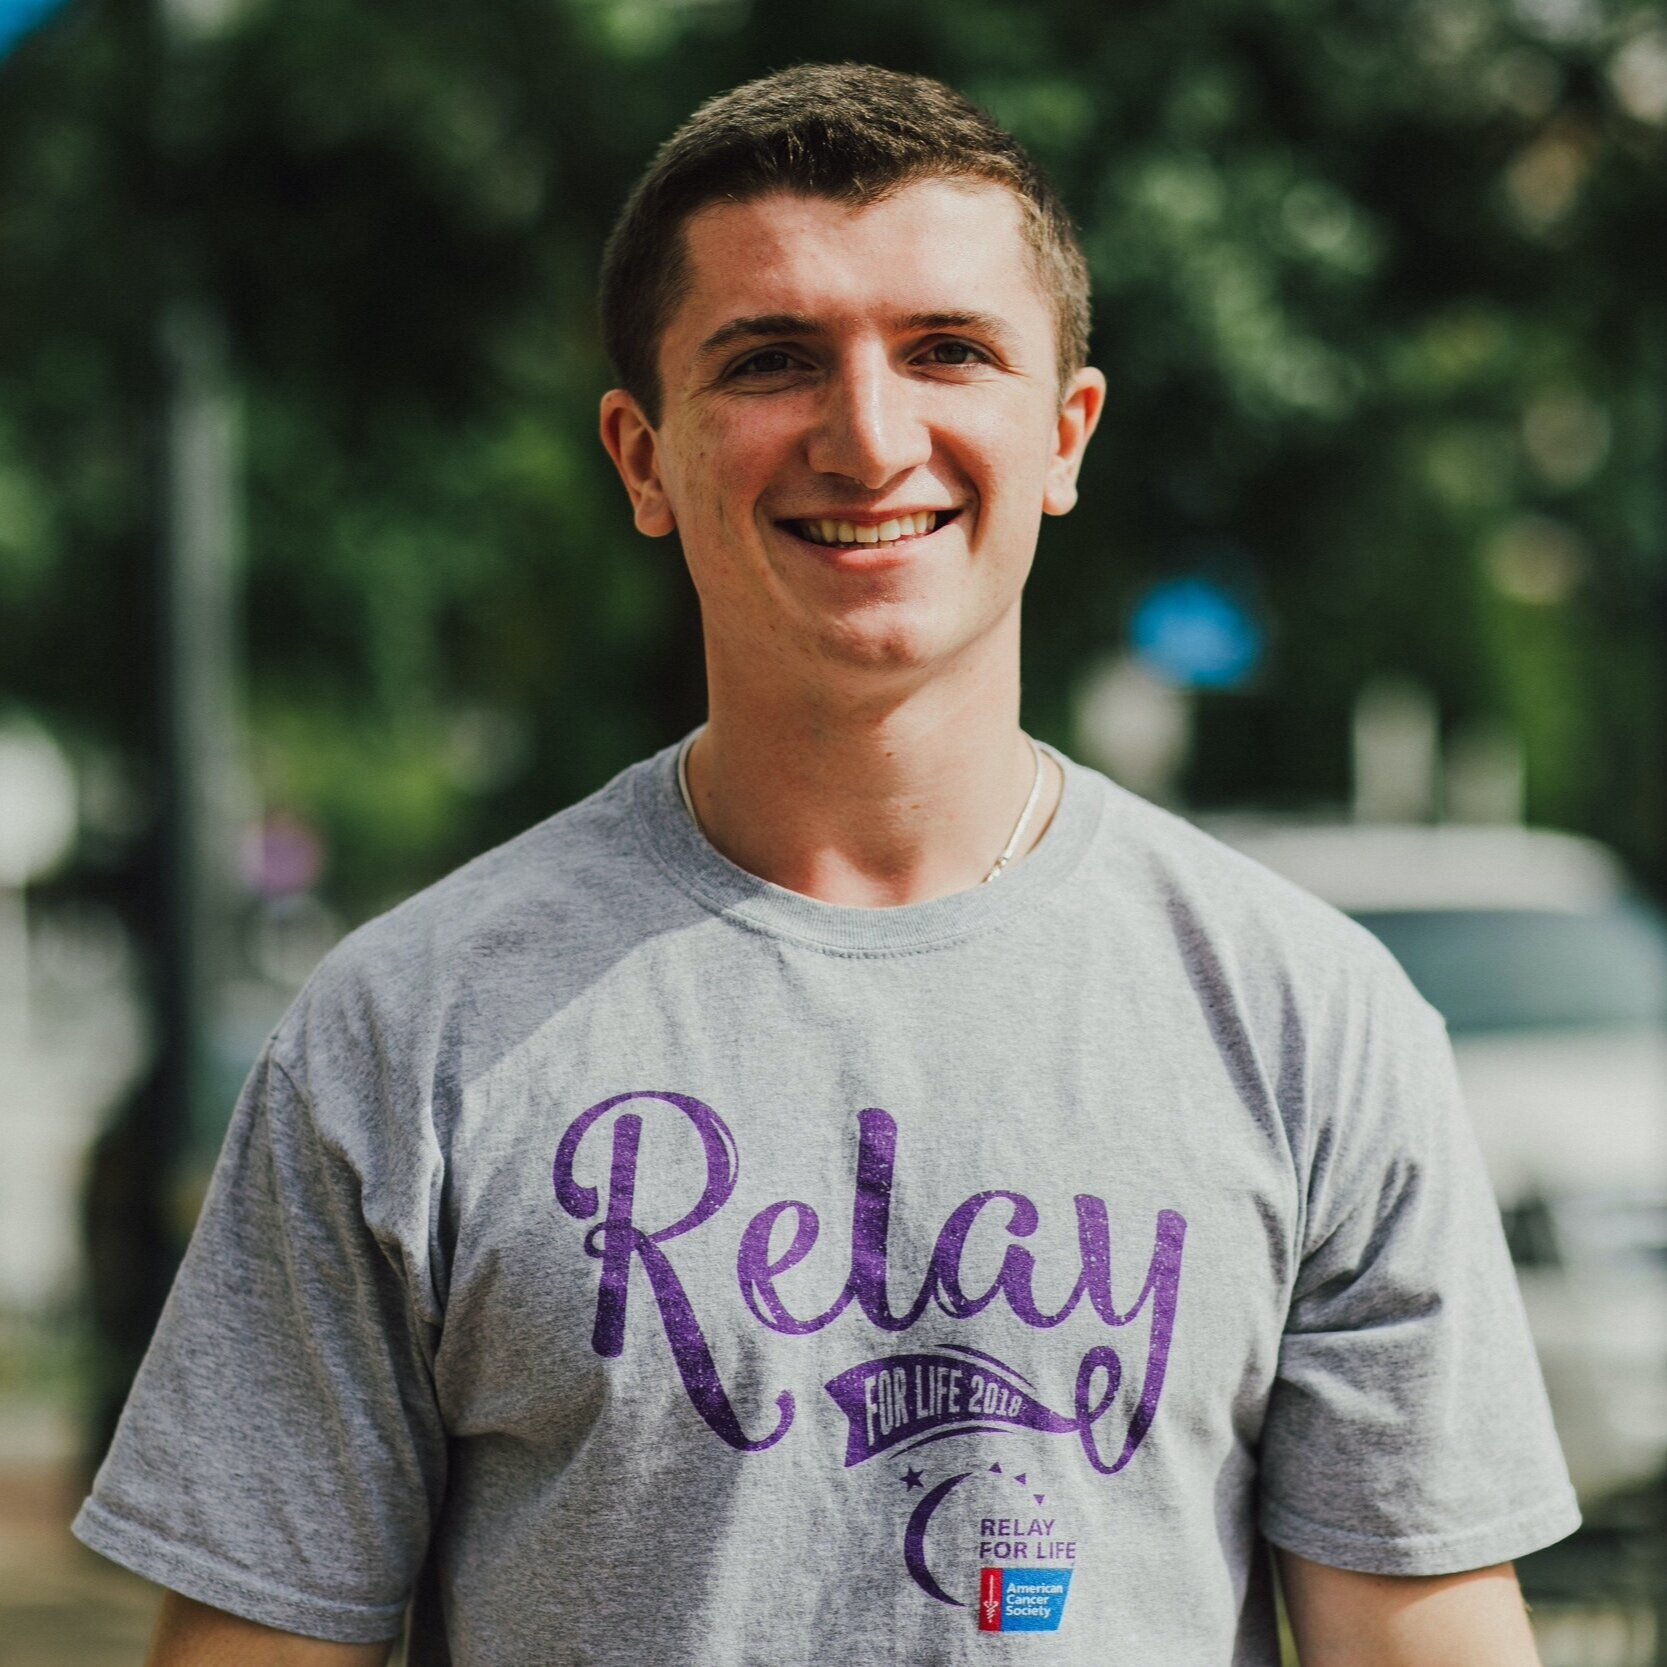 Have you or someone you know ever been personally impacted by cancer? I have on several occasions with those I love and care for. My name is Nick Anderson, a junior at Nichols College, and here is why I Relay.  I was less than a year old when I lost my grandmother. She was a breast cancer survivor, but due to her declining health from going through cancer treatment, she passed away on my mom's first Mother's Day being a mom. Cancer stripped me from being able to know her on a personal level, but her presence is still felt. At seven years old, I lost my grandfather to pancreatic cancer. This added to my passion for helping those with cancer. Years later, one of my closest friends was impacted by cancer. His father passed away our freshman year of high school. This was a shock felt not only by him, but also myself, our entire high school, and our local community. He decided to participate in this event called Relay For Life, which helped to raise money for cancer research through the American Cancer Society. I joined his team, then a year later I became co-captain alongside him.   Then, I came to Nichols College and realized that there was not an RFL event on campus. So, I decided to start it from the ground up. I've never looked back since. We've been able to raise over $40k for ACS at a school of 1,200 students, and we're aiming to make more and more of an impact each year.   I look forward to using the skills and insights I've gained through starting RFL of Nichols College and applying this to the Northeast region!